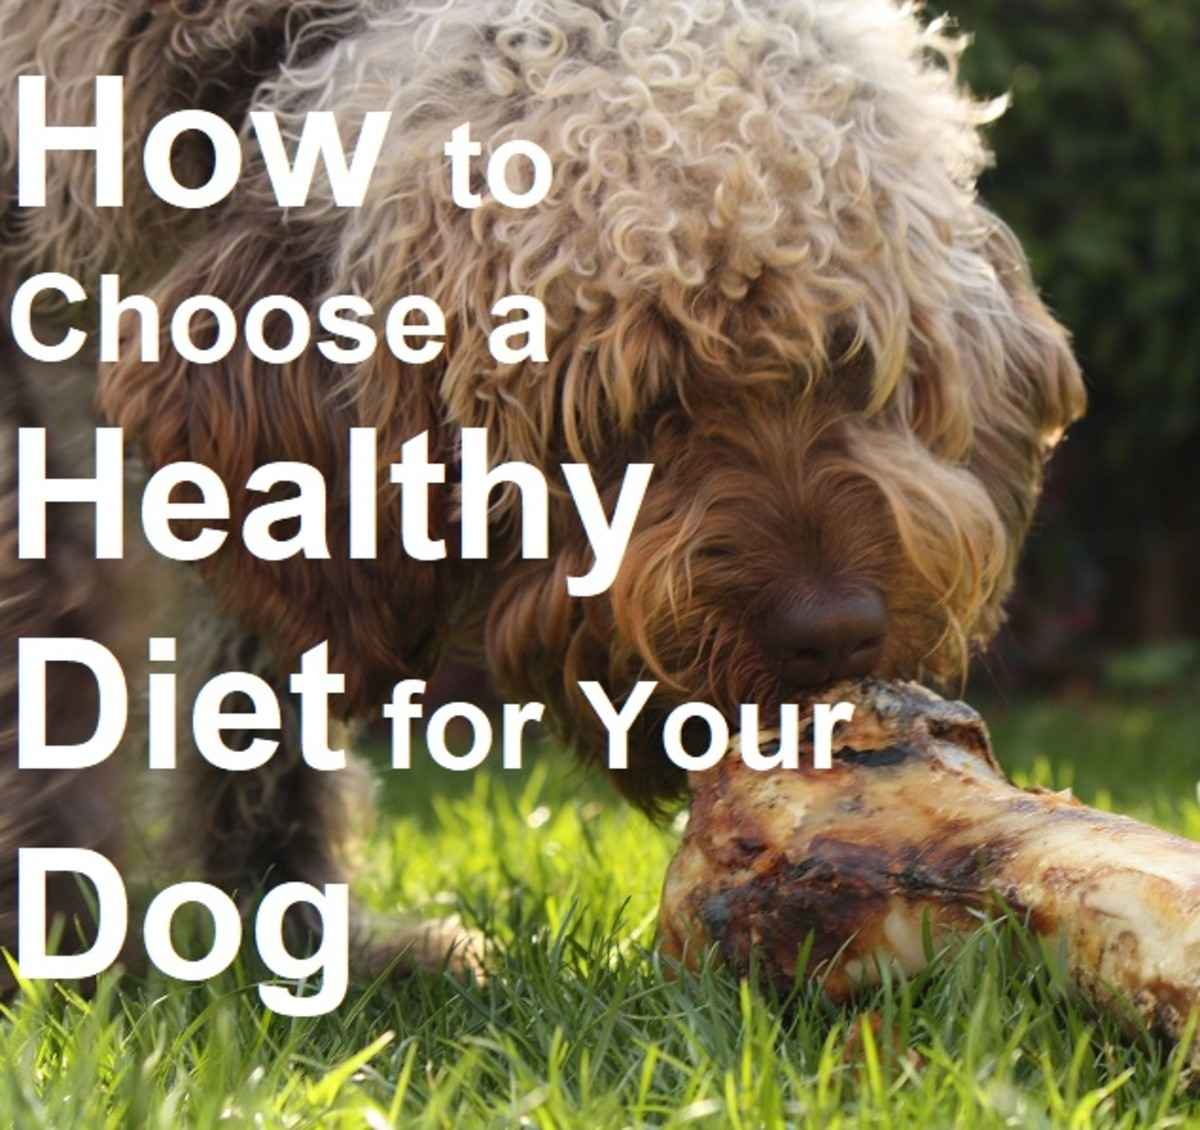 Choosing the right diet for your dog's age, breed, and lifestyle is important for his health and happiness.